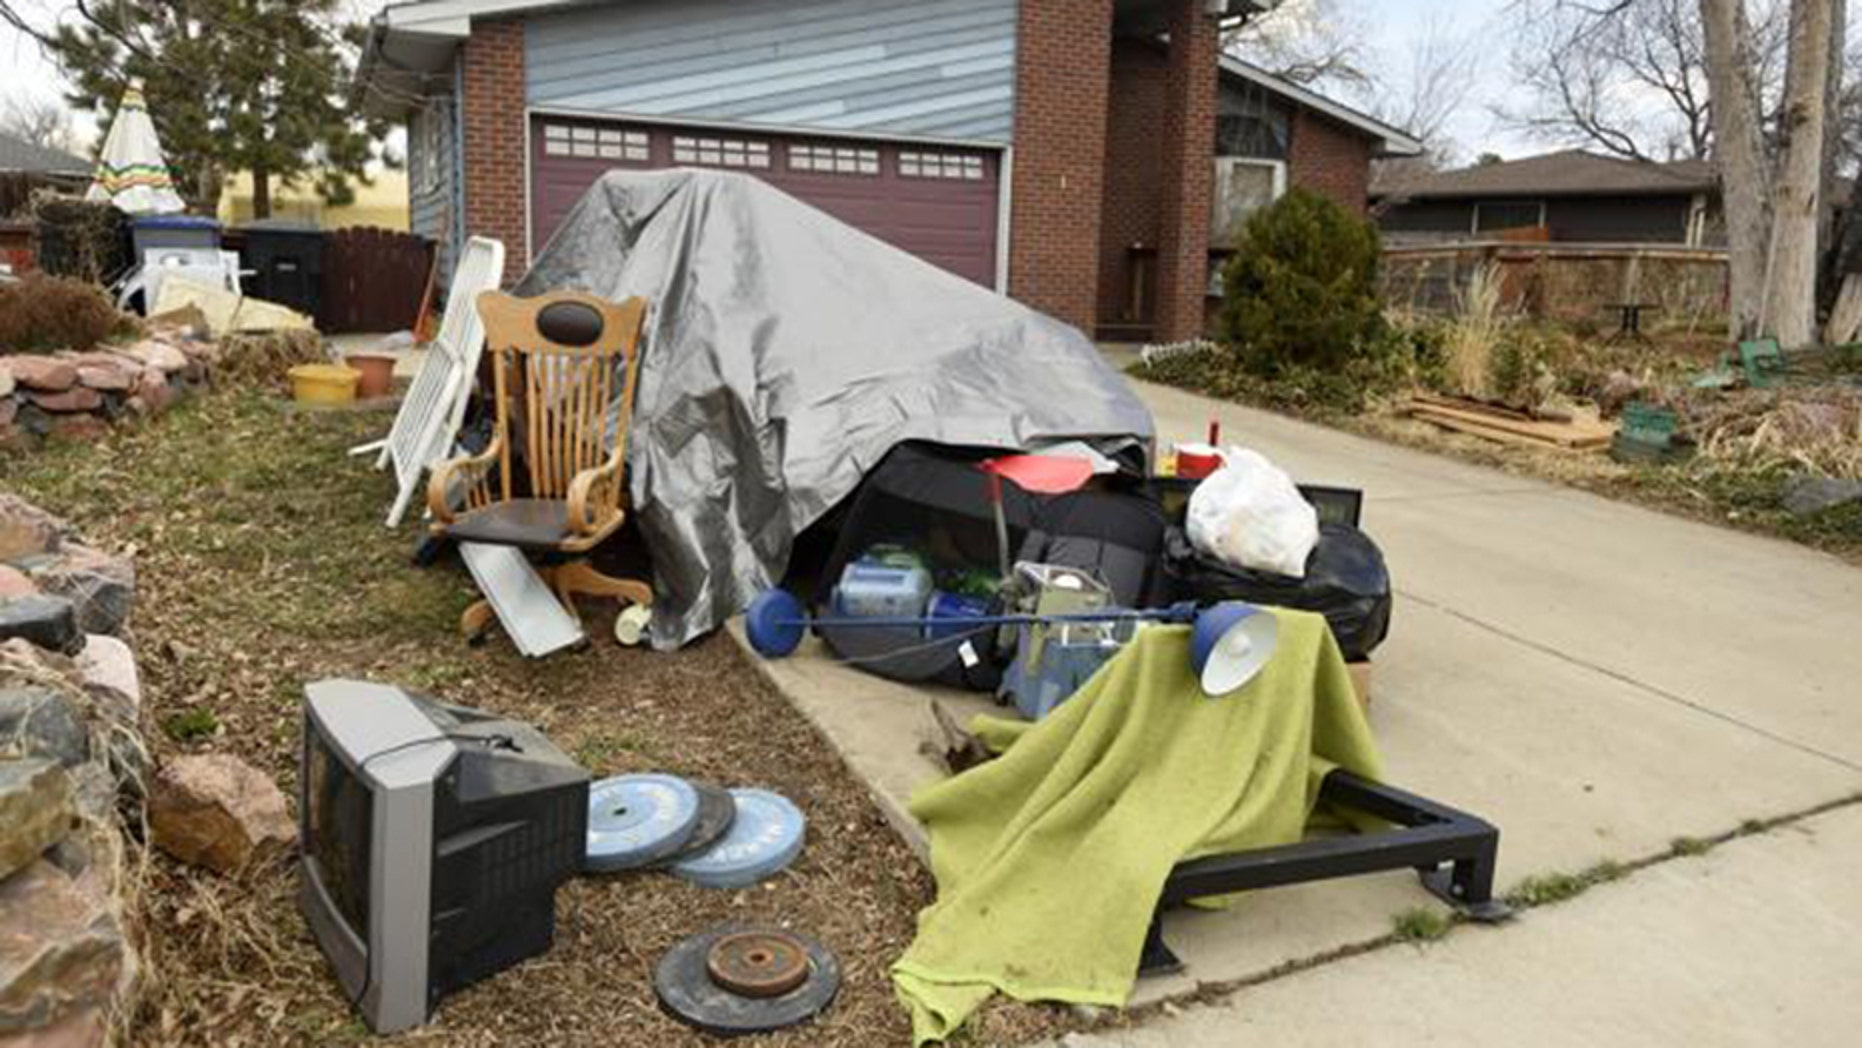 A Colorado woman's house was ransacked after it was mistaken as the site of an estate sale.